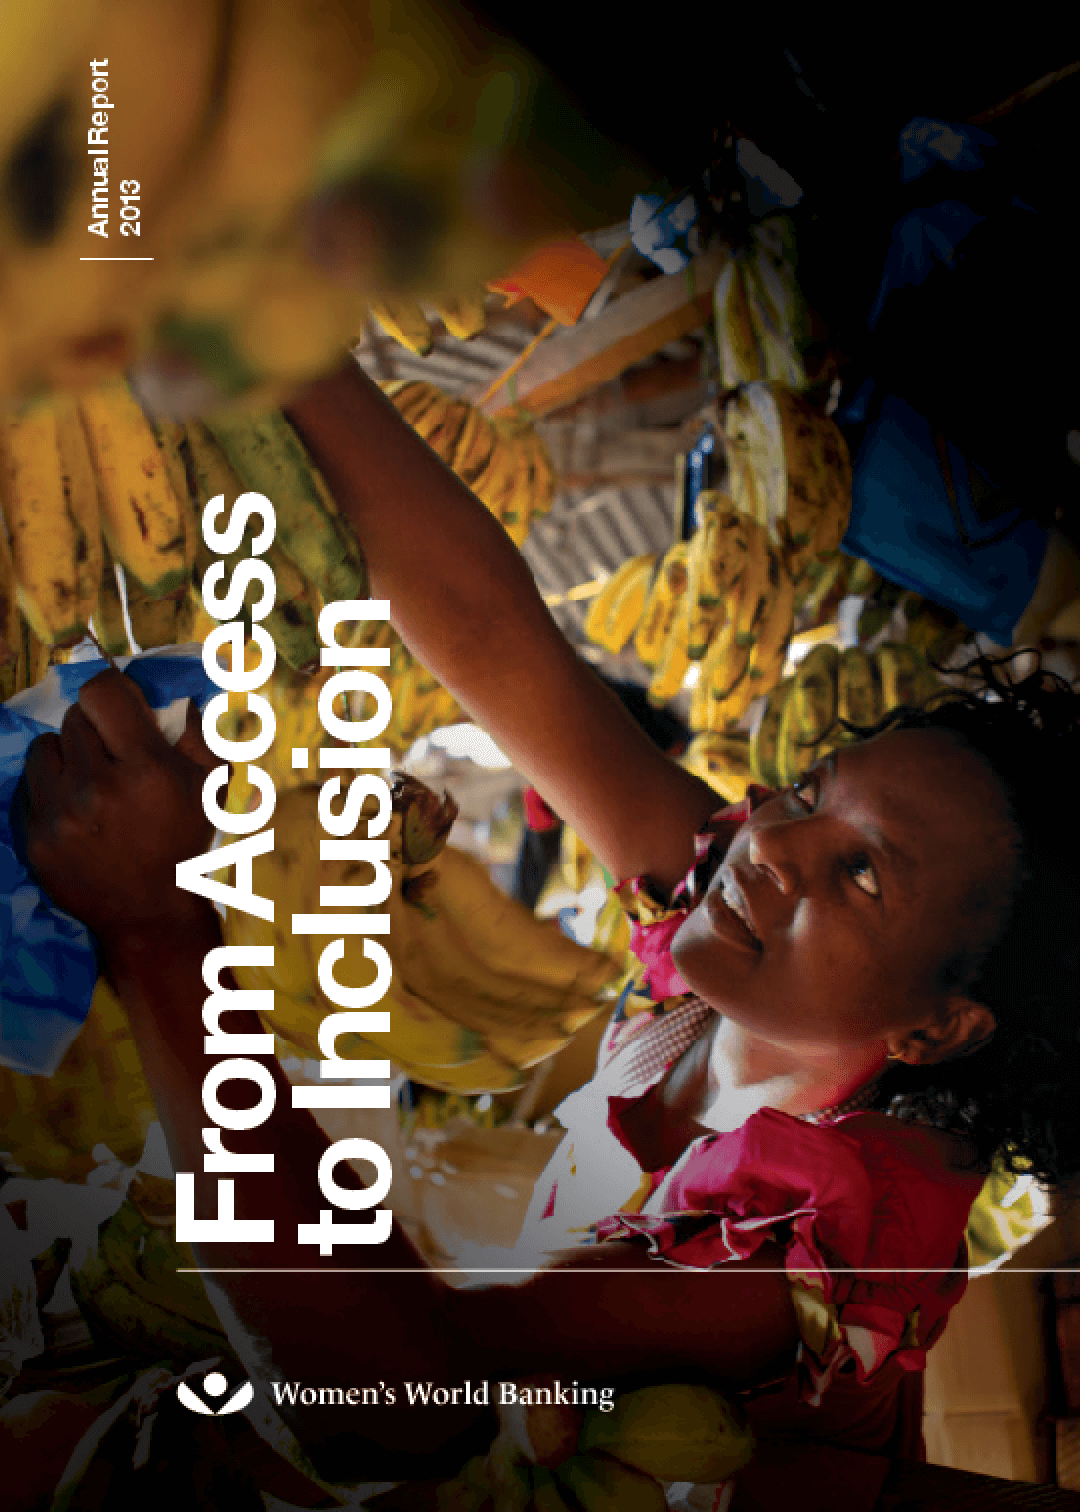 Annual Report 2013: From Access to Inclusion